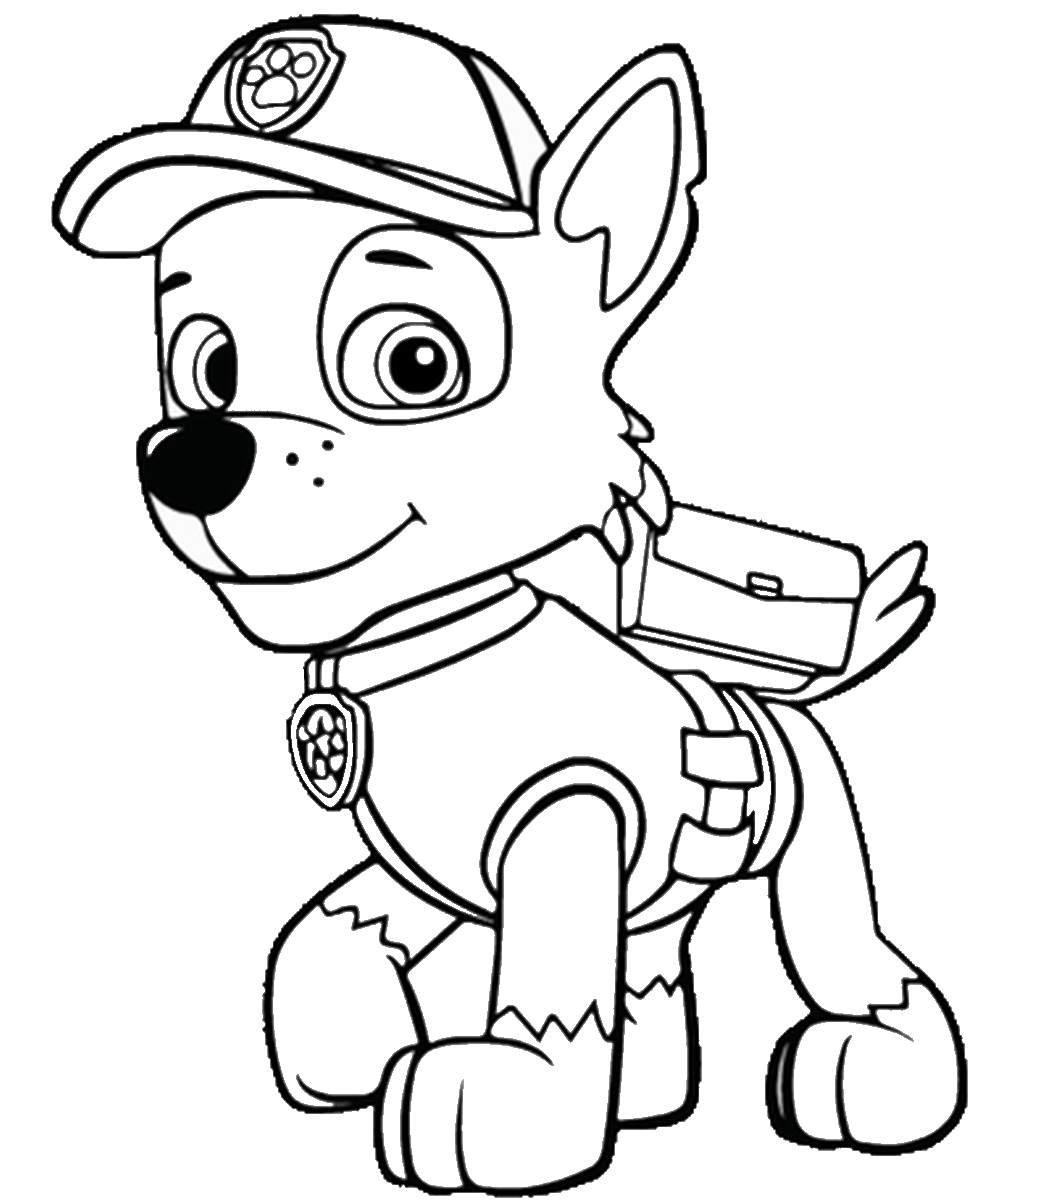 It's just an image of Critical Toddler Coloring Pages